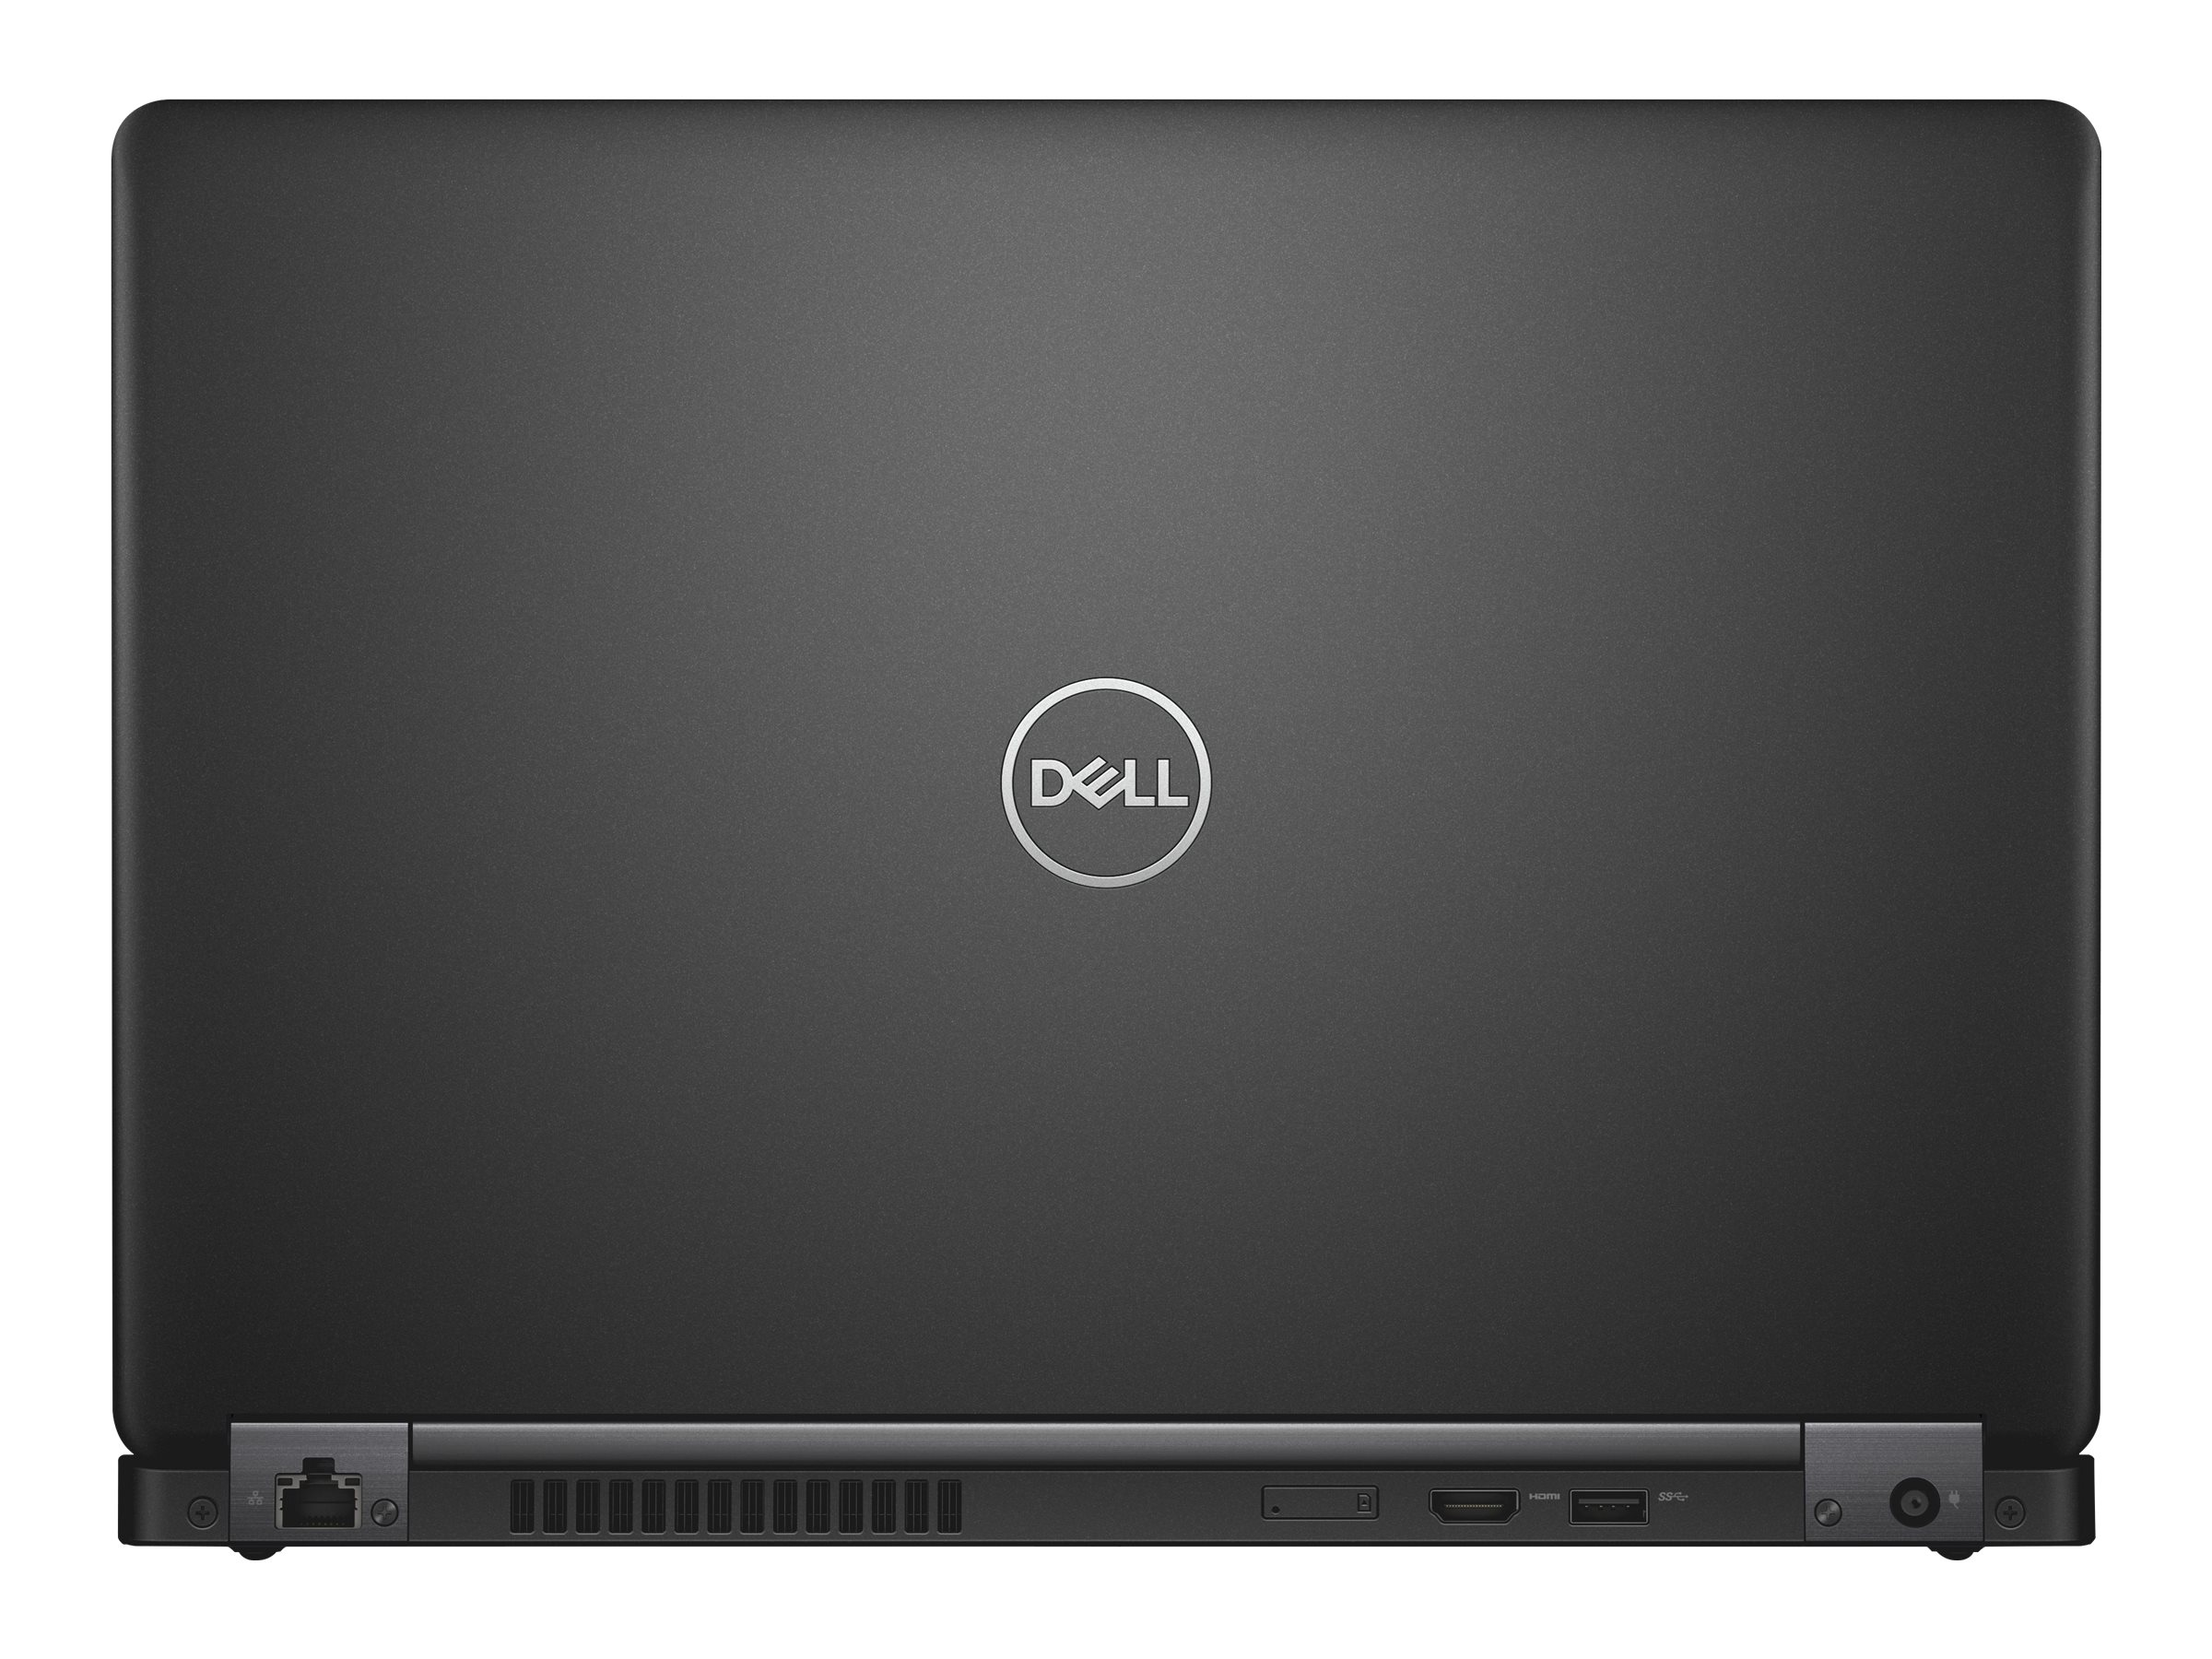 intel hd graphics 620 drivers dell